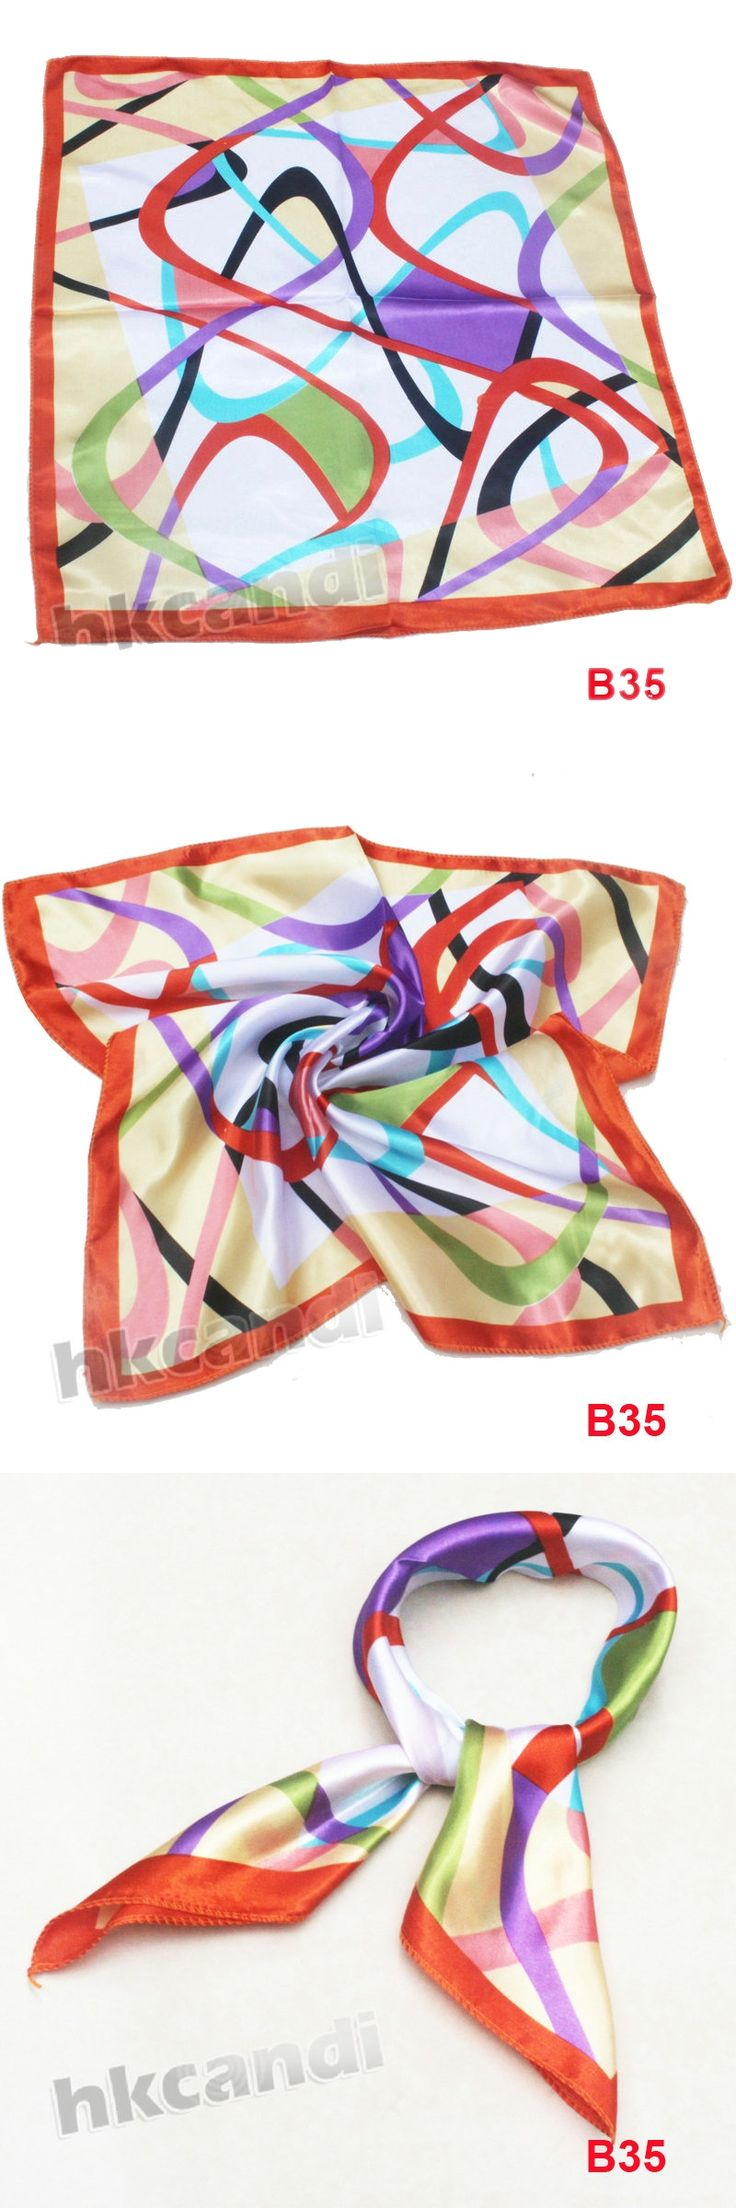 2017 fashion women's chiffon scarves new arrival Autumn casual wraps charpe silk scarf ladies 50cm